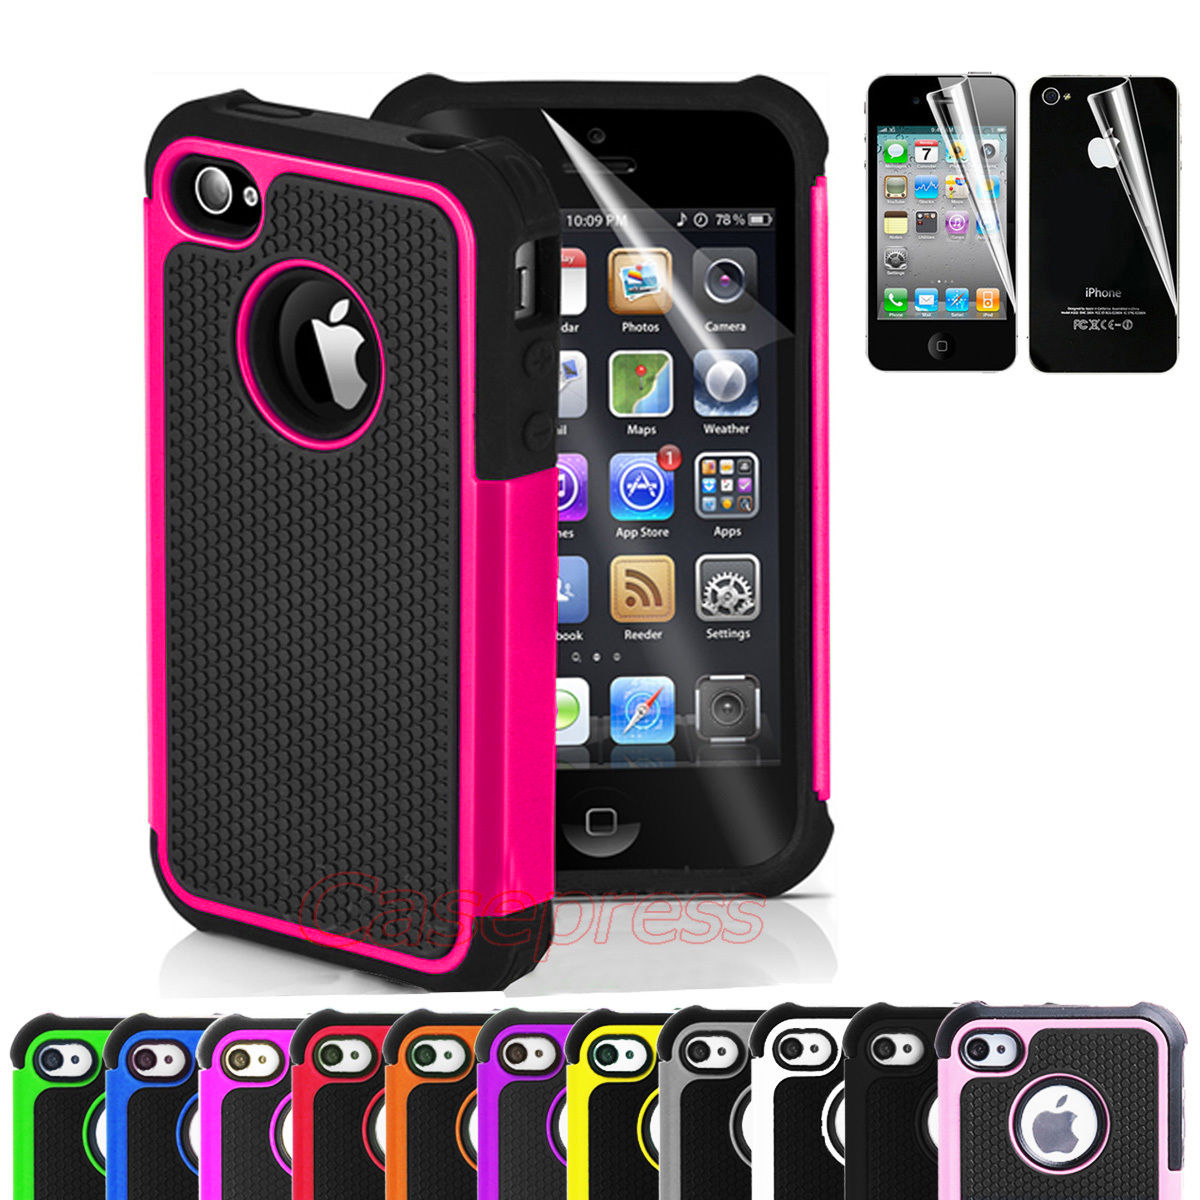 iPhone 4S case is Specially designed for iPhone 4 4s; will not fit for OtterBox Defender Series Case & Holster for Apple iPhone 4/4S Retail Packaging - Black. by OtterBox. $ $ 21 95 Prime. FREE Shipping on eligible orders. Only 6 left in stock - order soon. More Buying Choices.